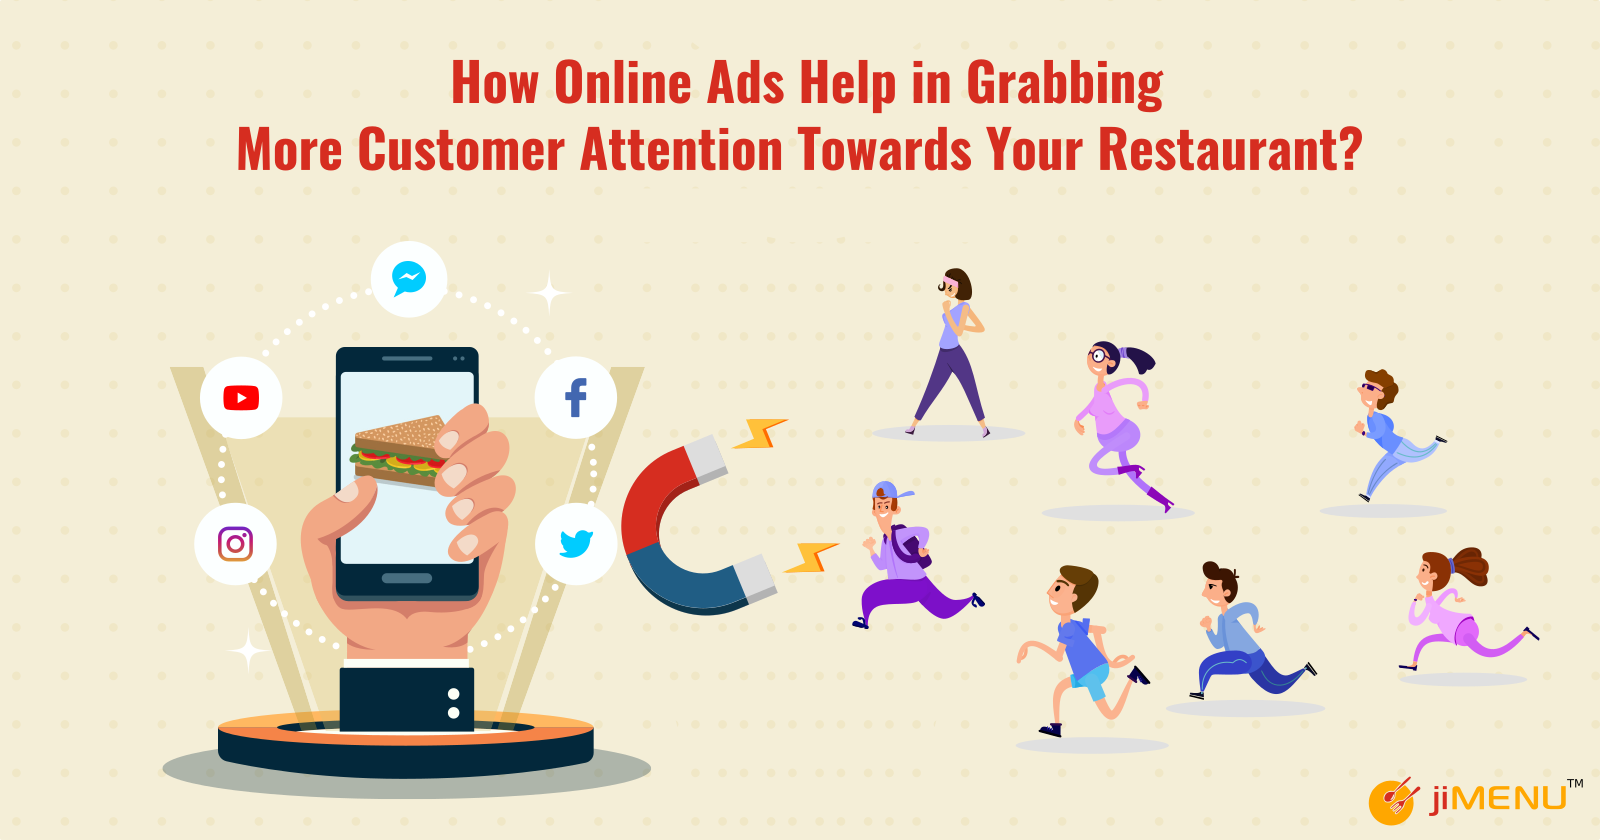 How Online Ads Help in Grabbing More Customer Attention Towards Your Restaurant?